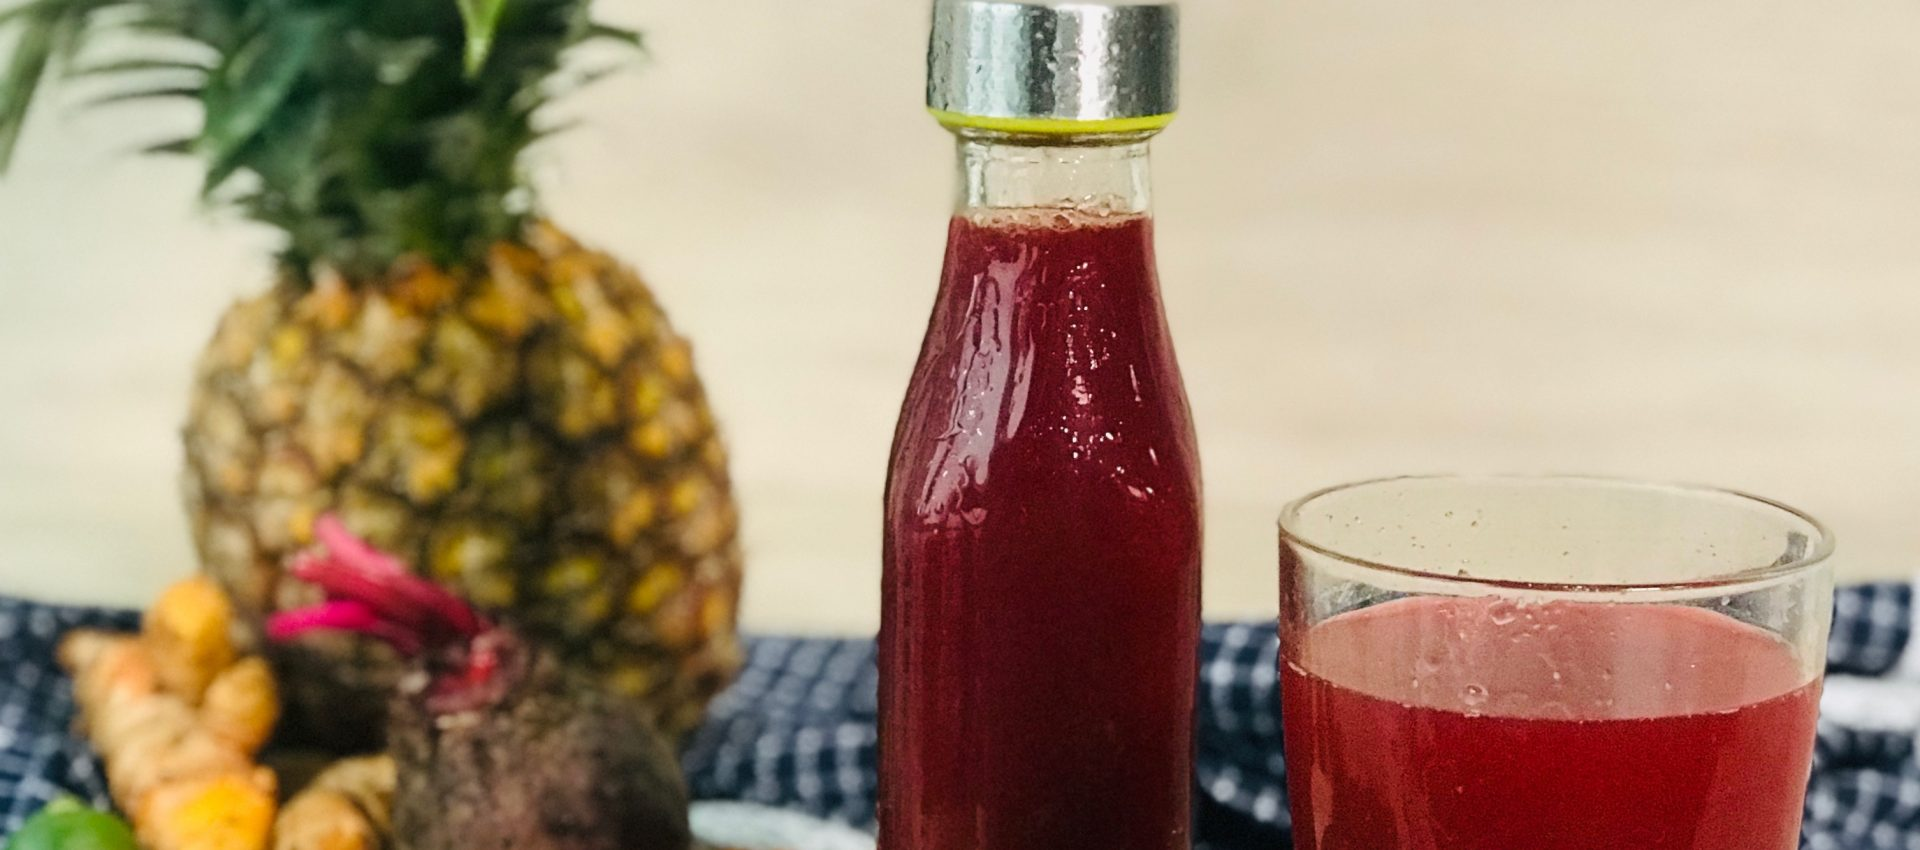 Fountain of Youth Juice